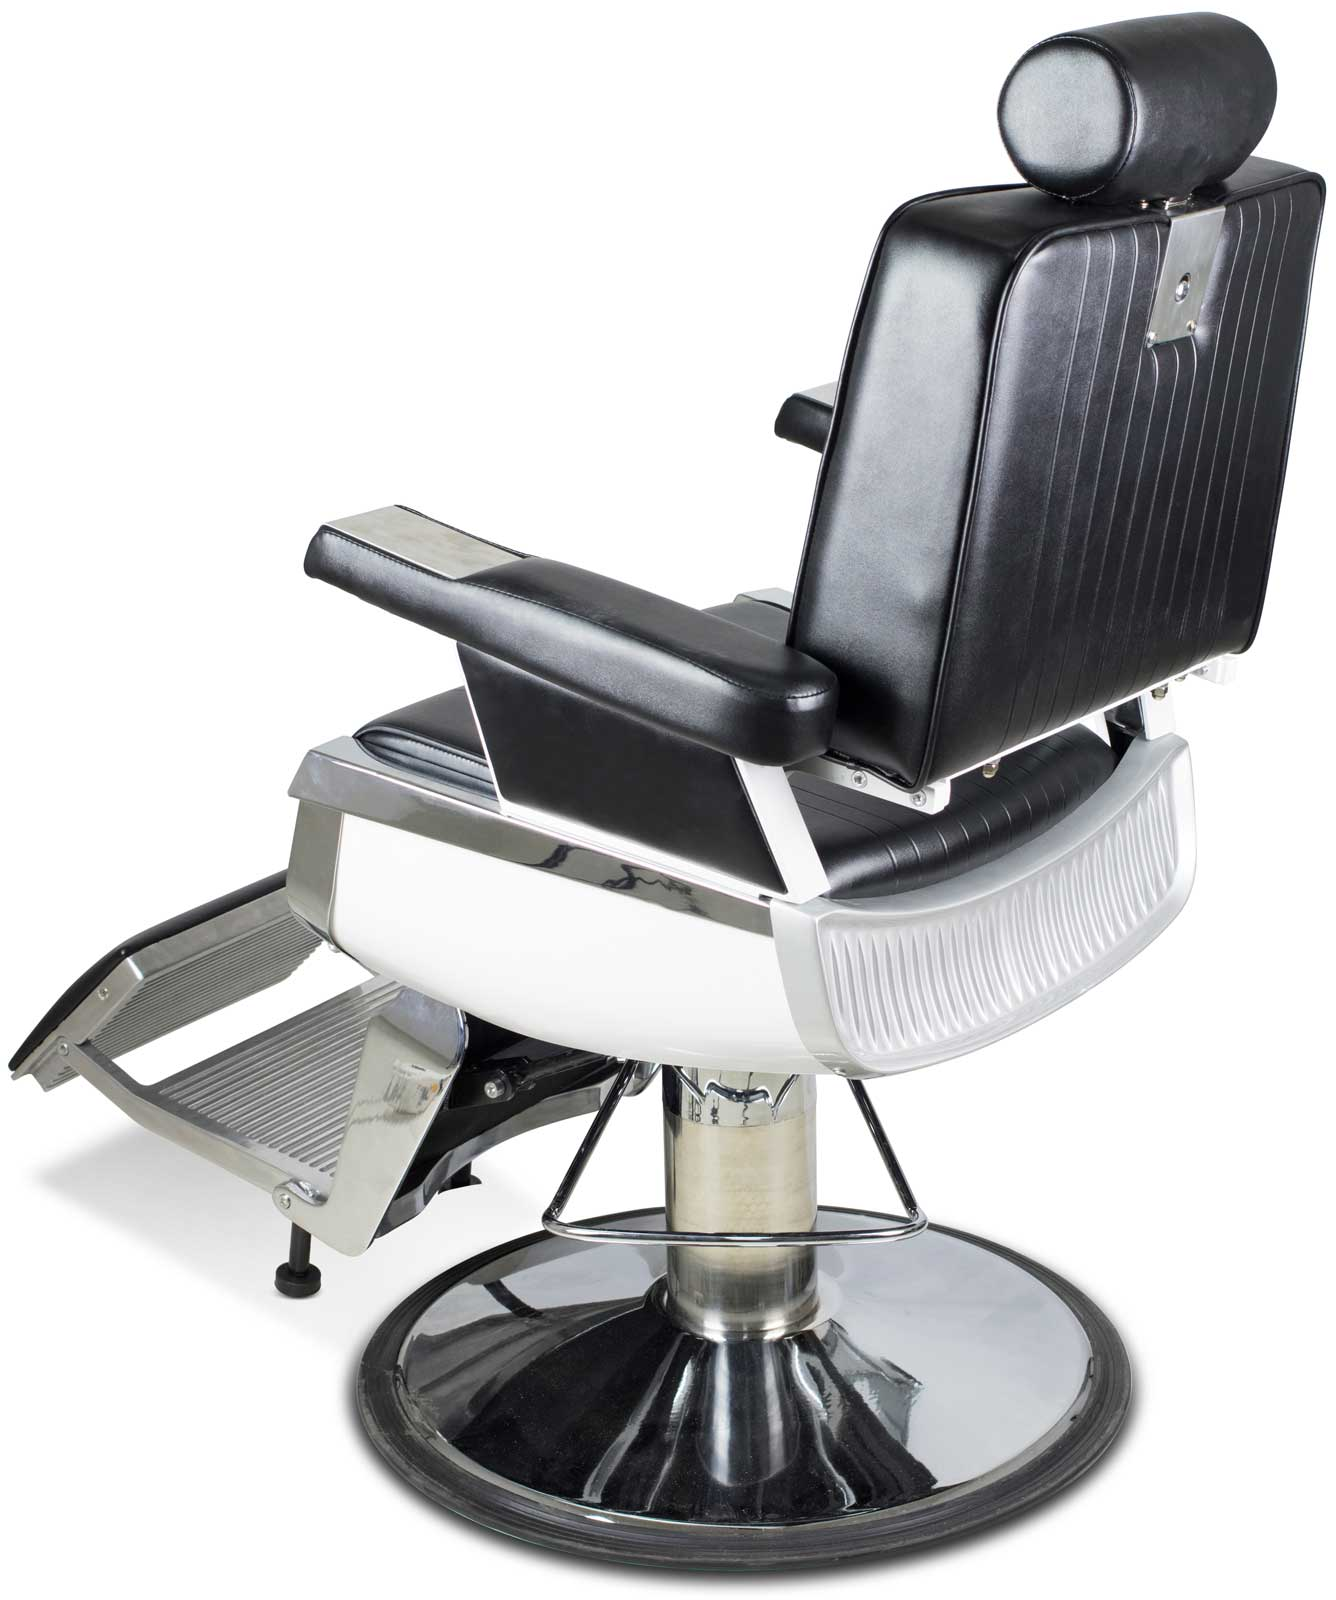 Truman Vintage Reclining Hair Salon Barber Chair  eBay